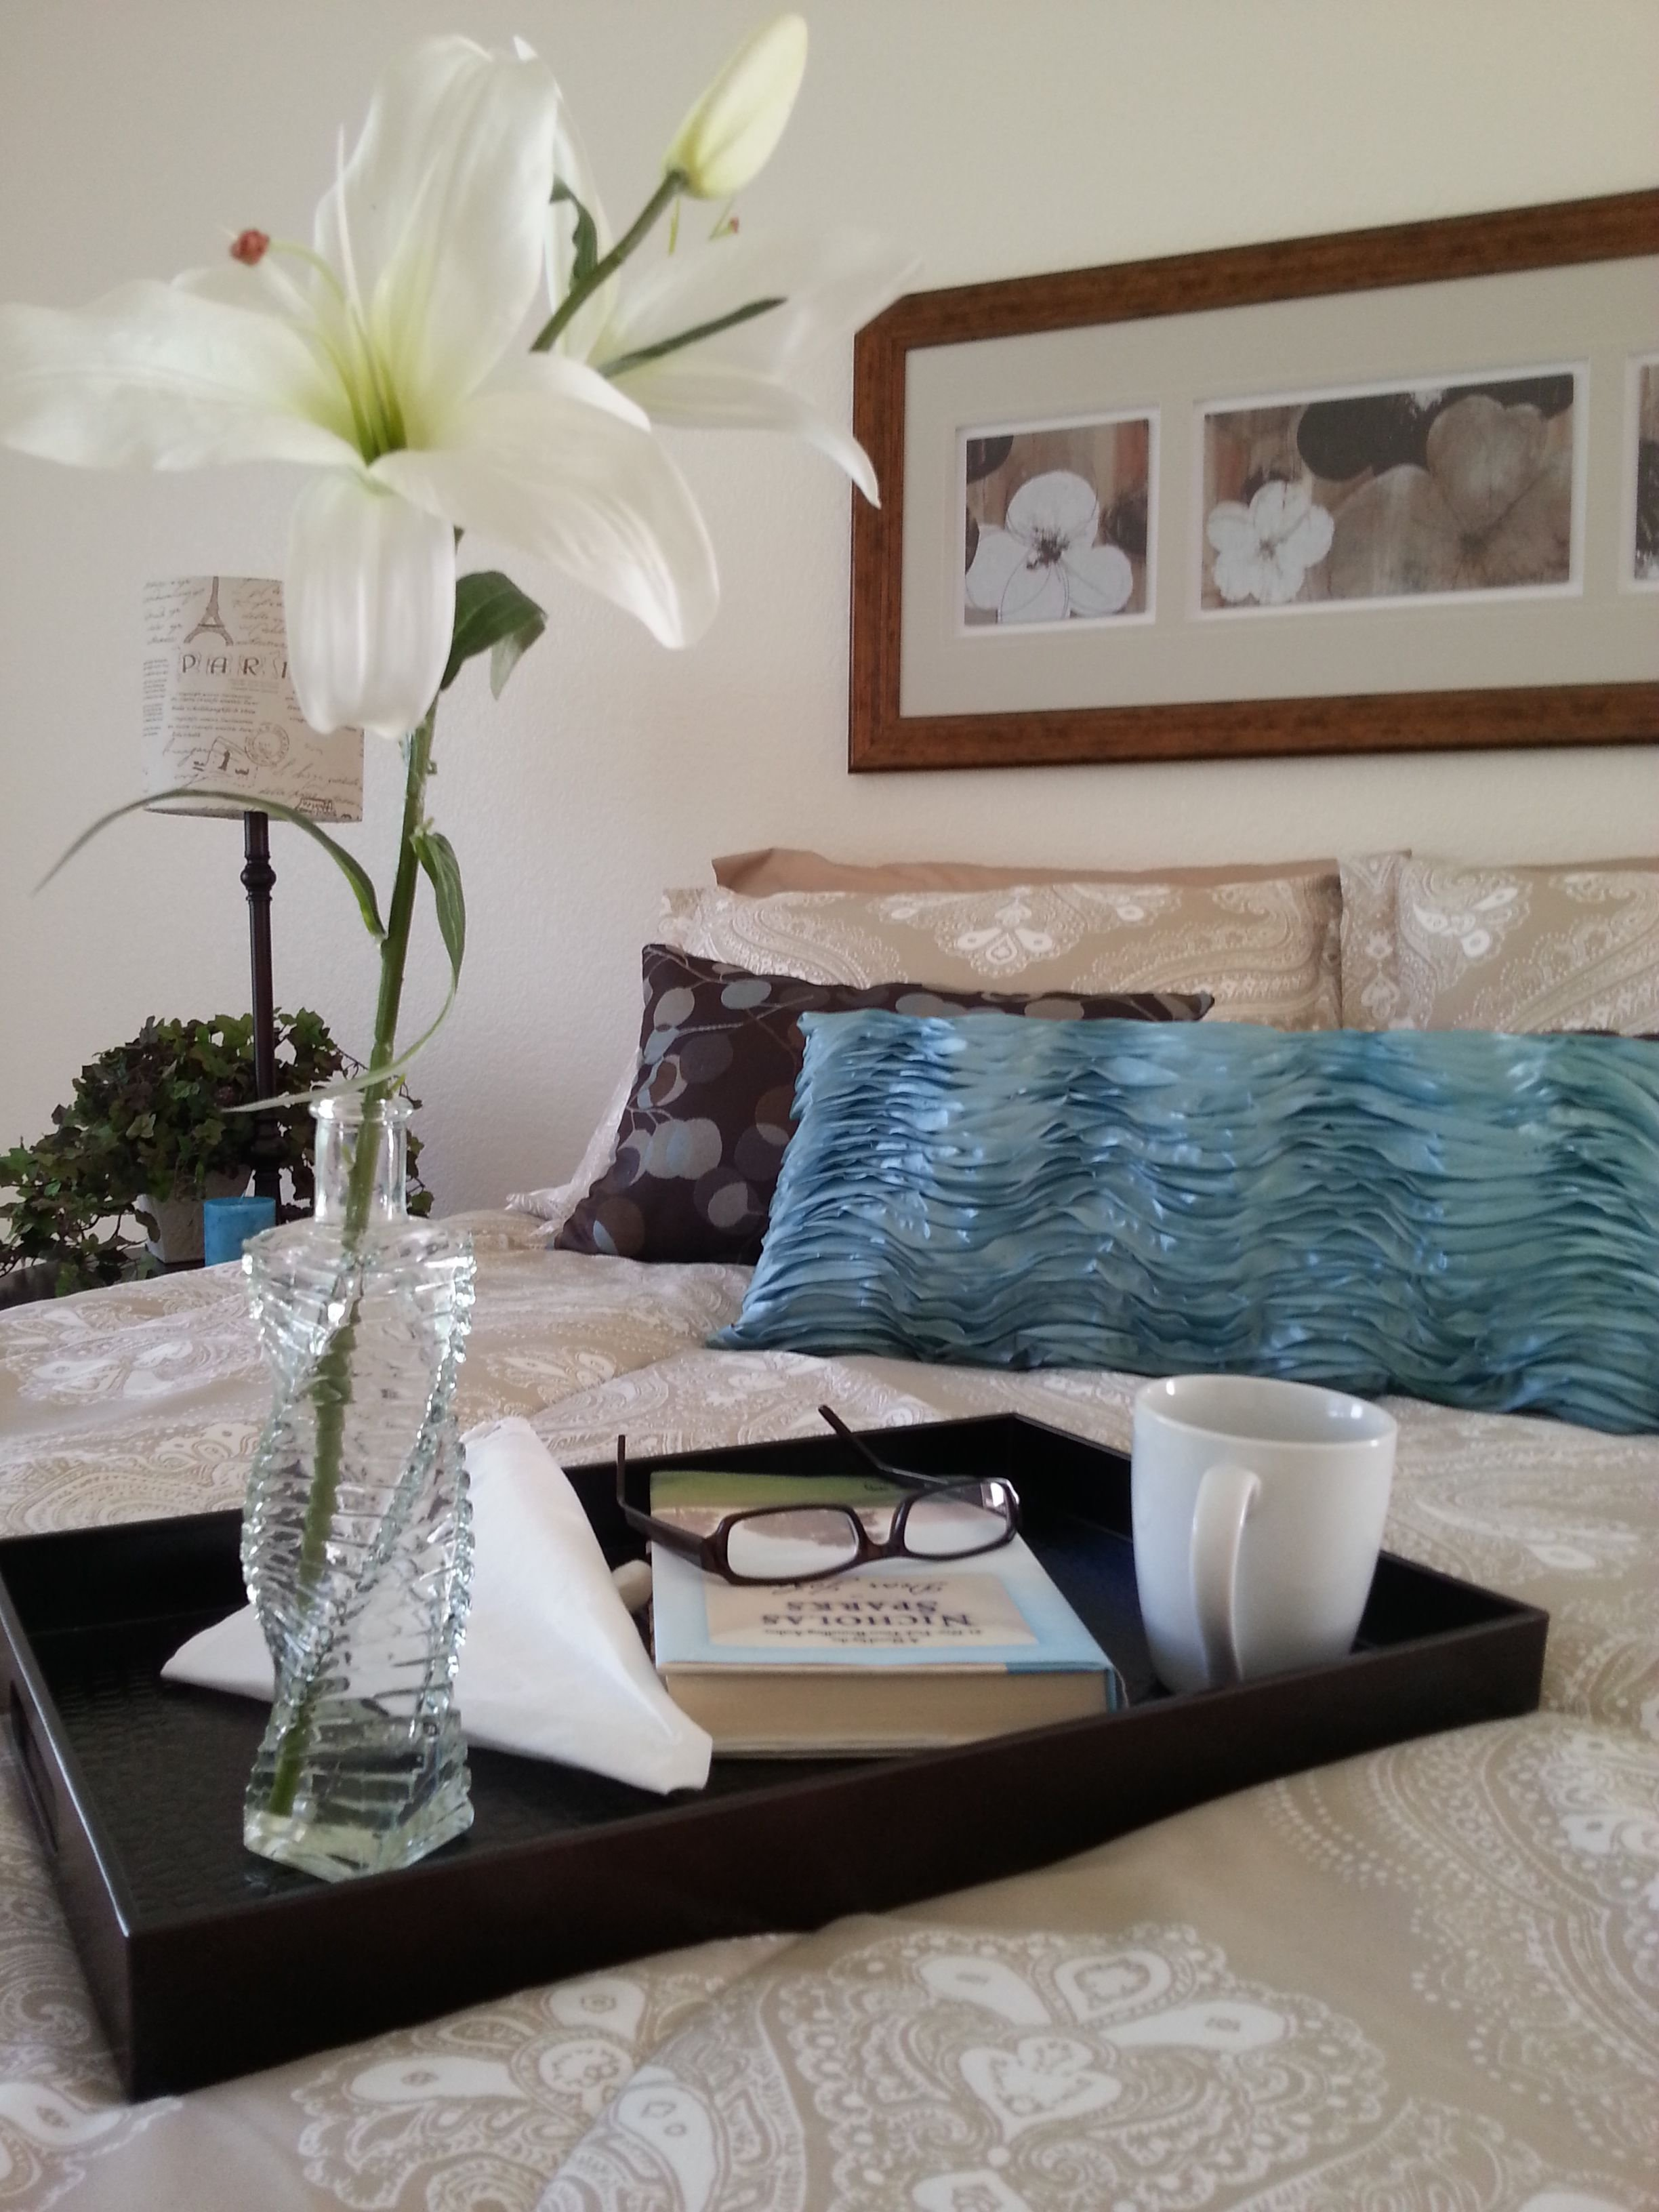 Best Pin By Valerie Monkarsh On Bed Tray Staging Inspirations With Pictures